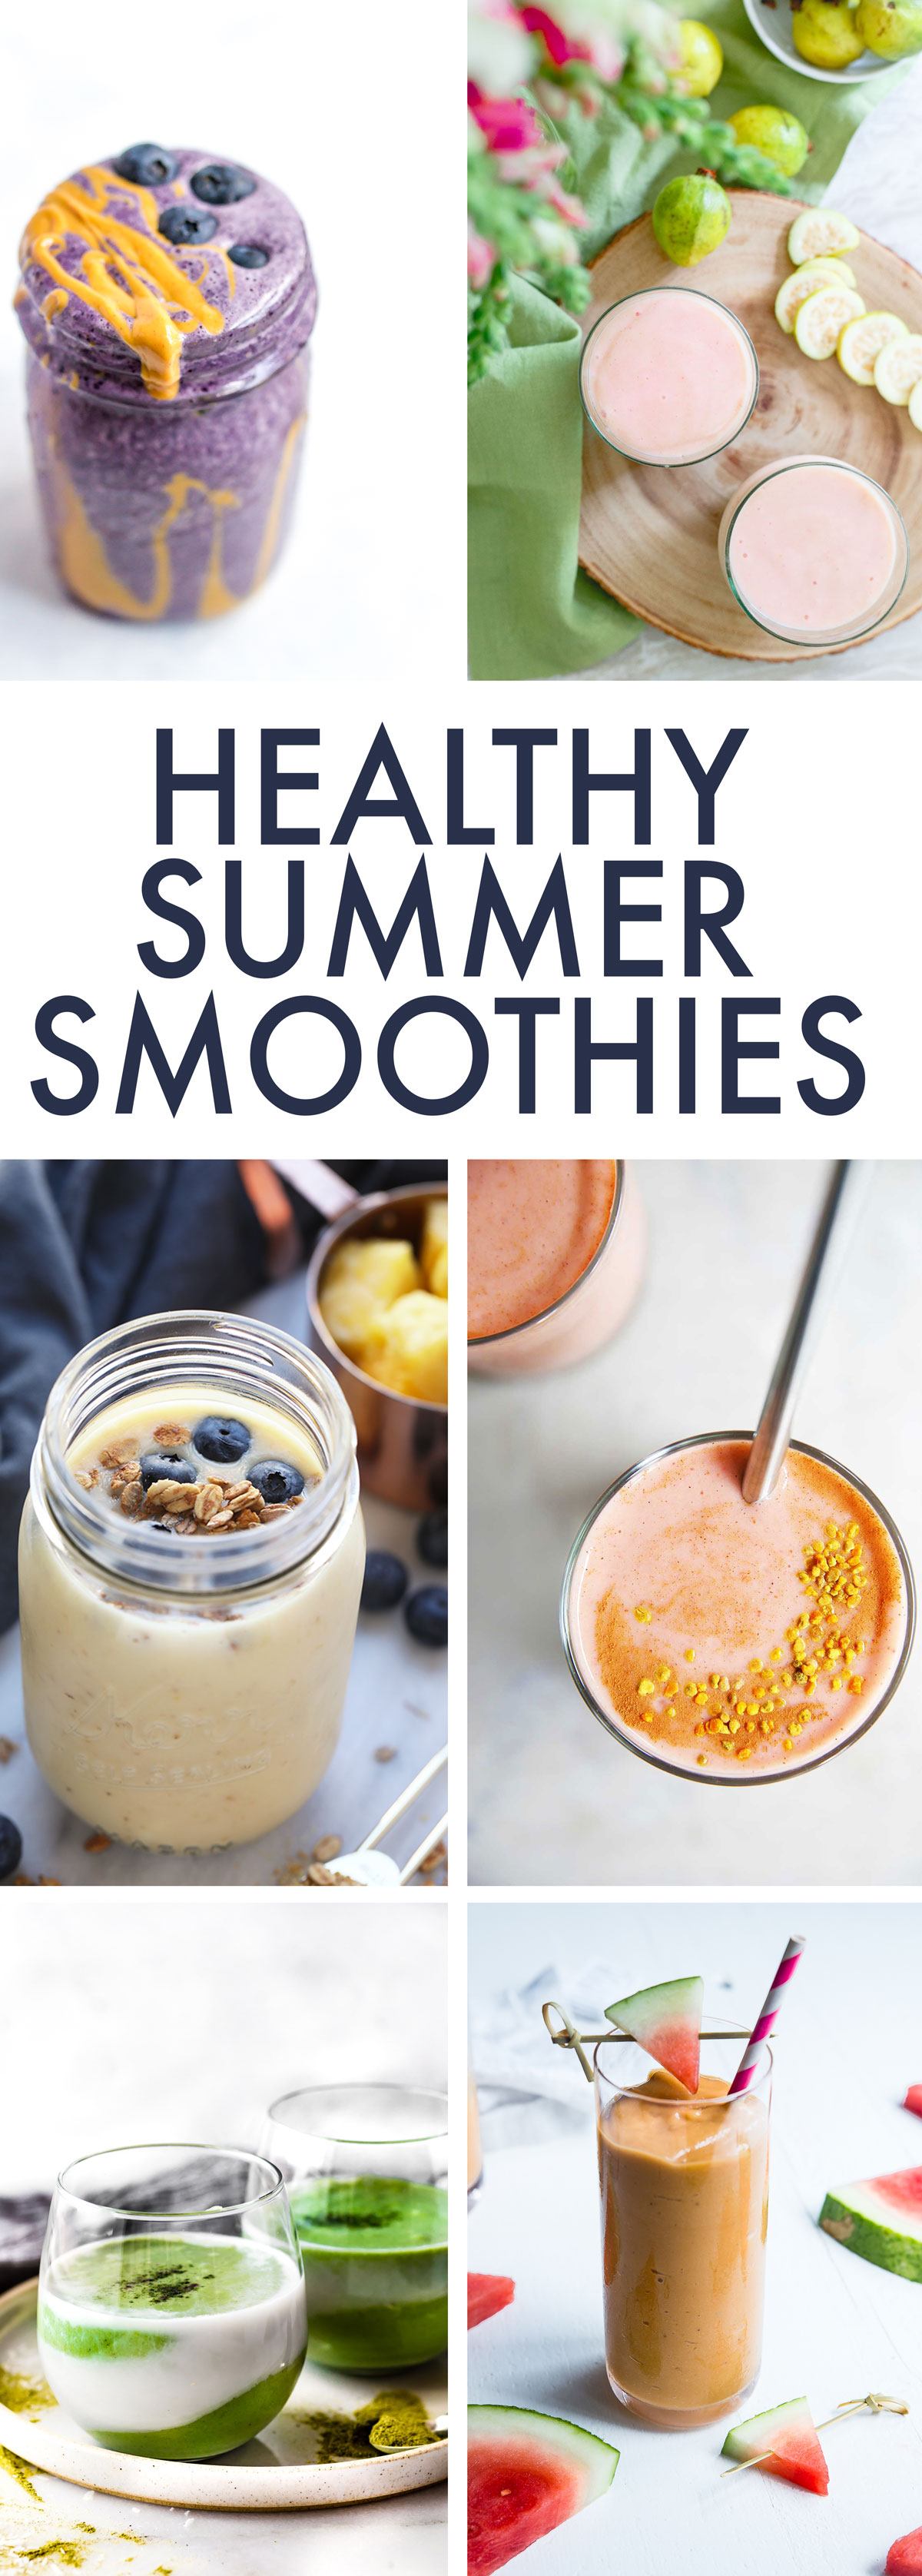 Healthy Summer Smoothies (dairy-free, vegan) - Lexi's Clean Kitchen